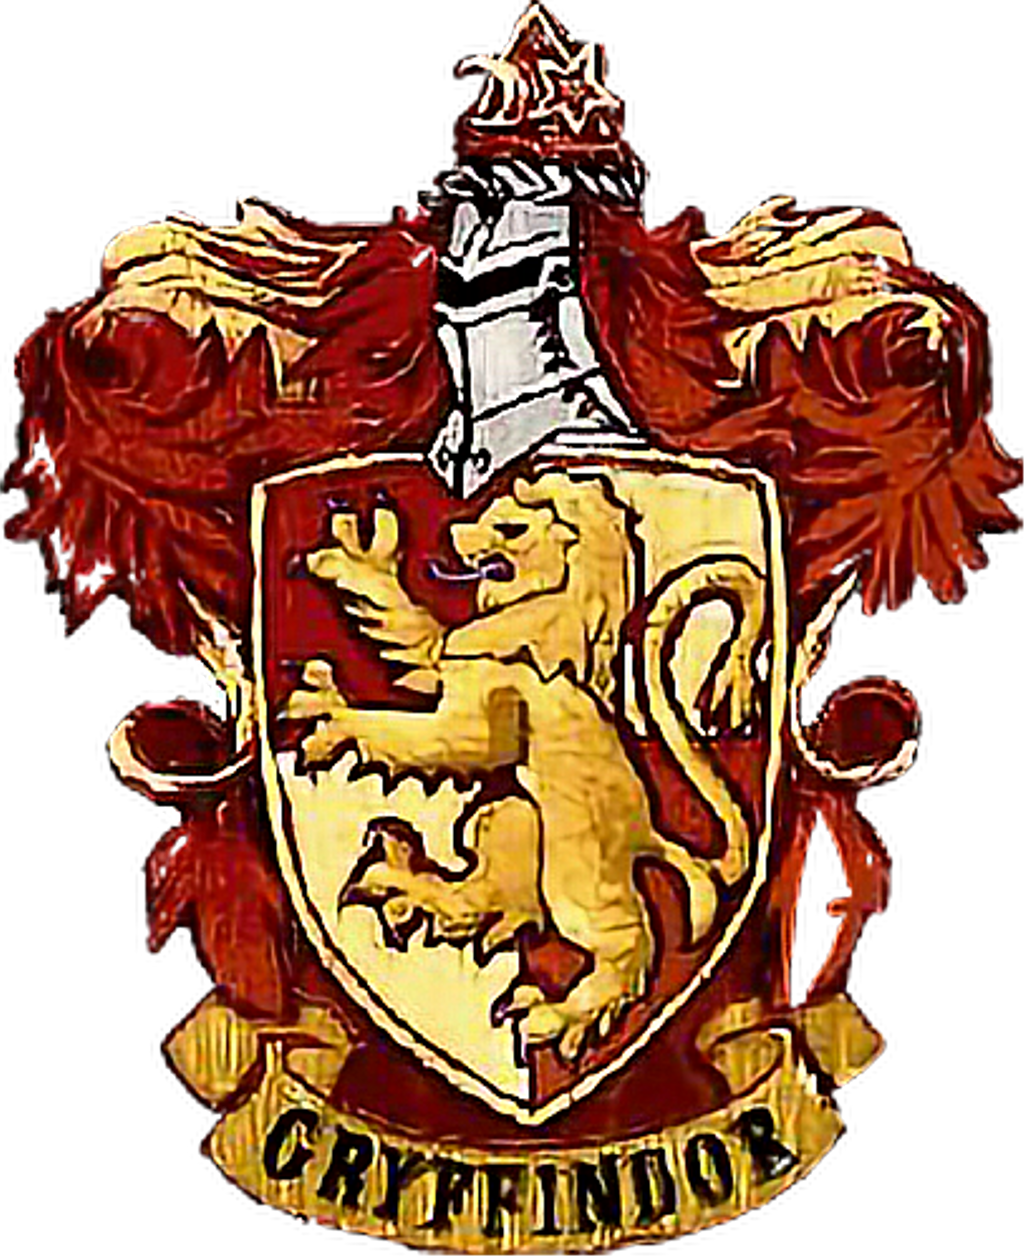 Gryffindor Harry Potter Hogwarts School of Witchcraft and Wizardry.